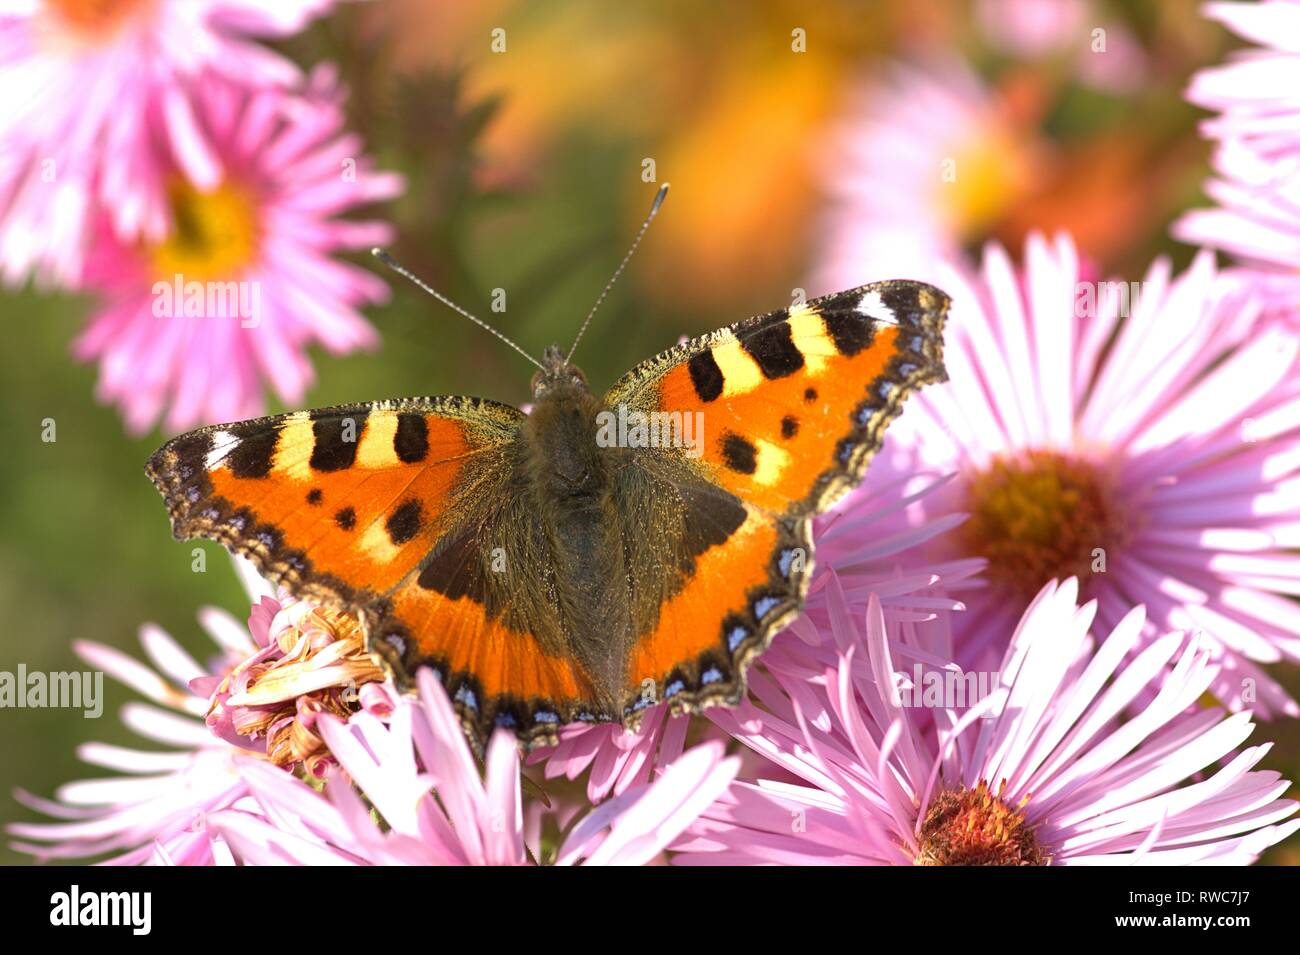 Schleswig, Deutschland. 11th Oct, 2018. A small fox (Aglais urticae, syn .: Nymphalis urticae), a butterfly of the family Nymphalidae in the best autumn weather on the blood of an aster in Furstengarten in Schleswig. Class: Insects (Insecta), Order: Butterflies (Lepidoptera), Family: Nymphalidae, Subfamily: Spotted Butterfly (Nymphalinae), Genus: Aglais, Species: Small Fox | usage worldwide Credit: dpa/Alamy Live News Stock Photo